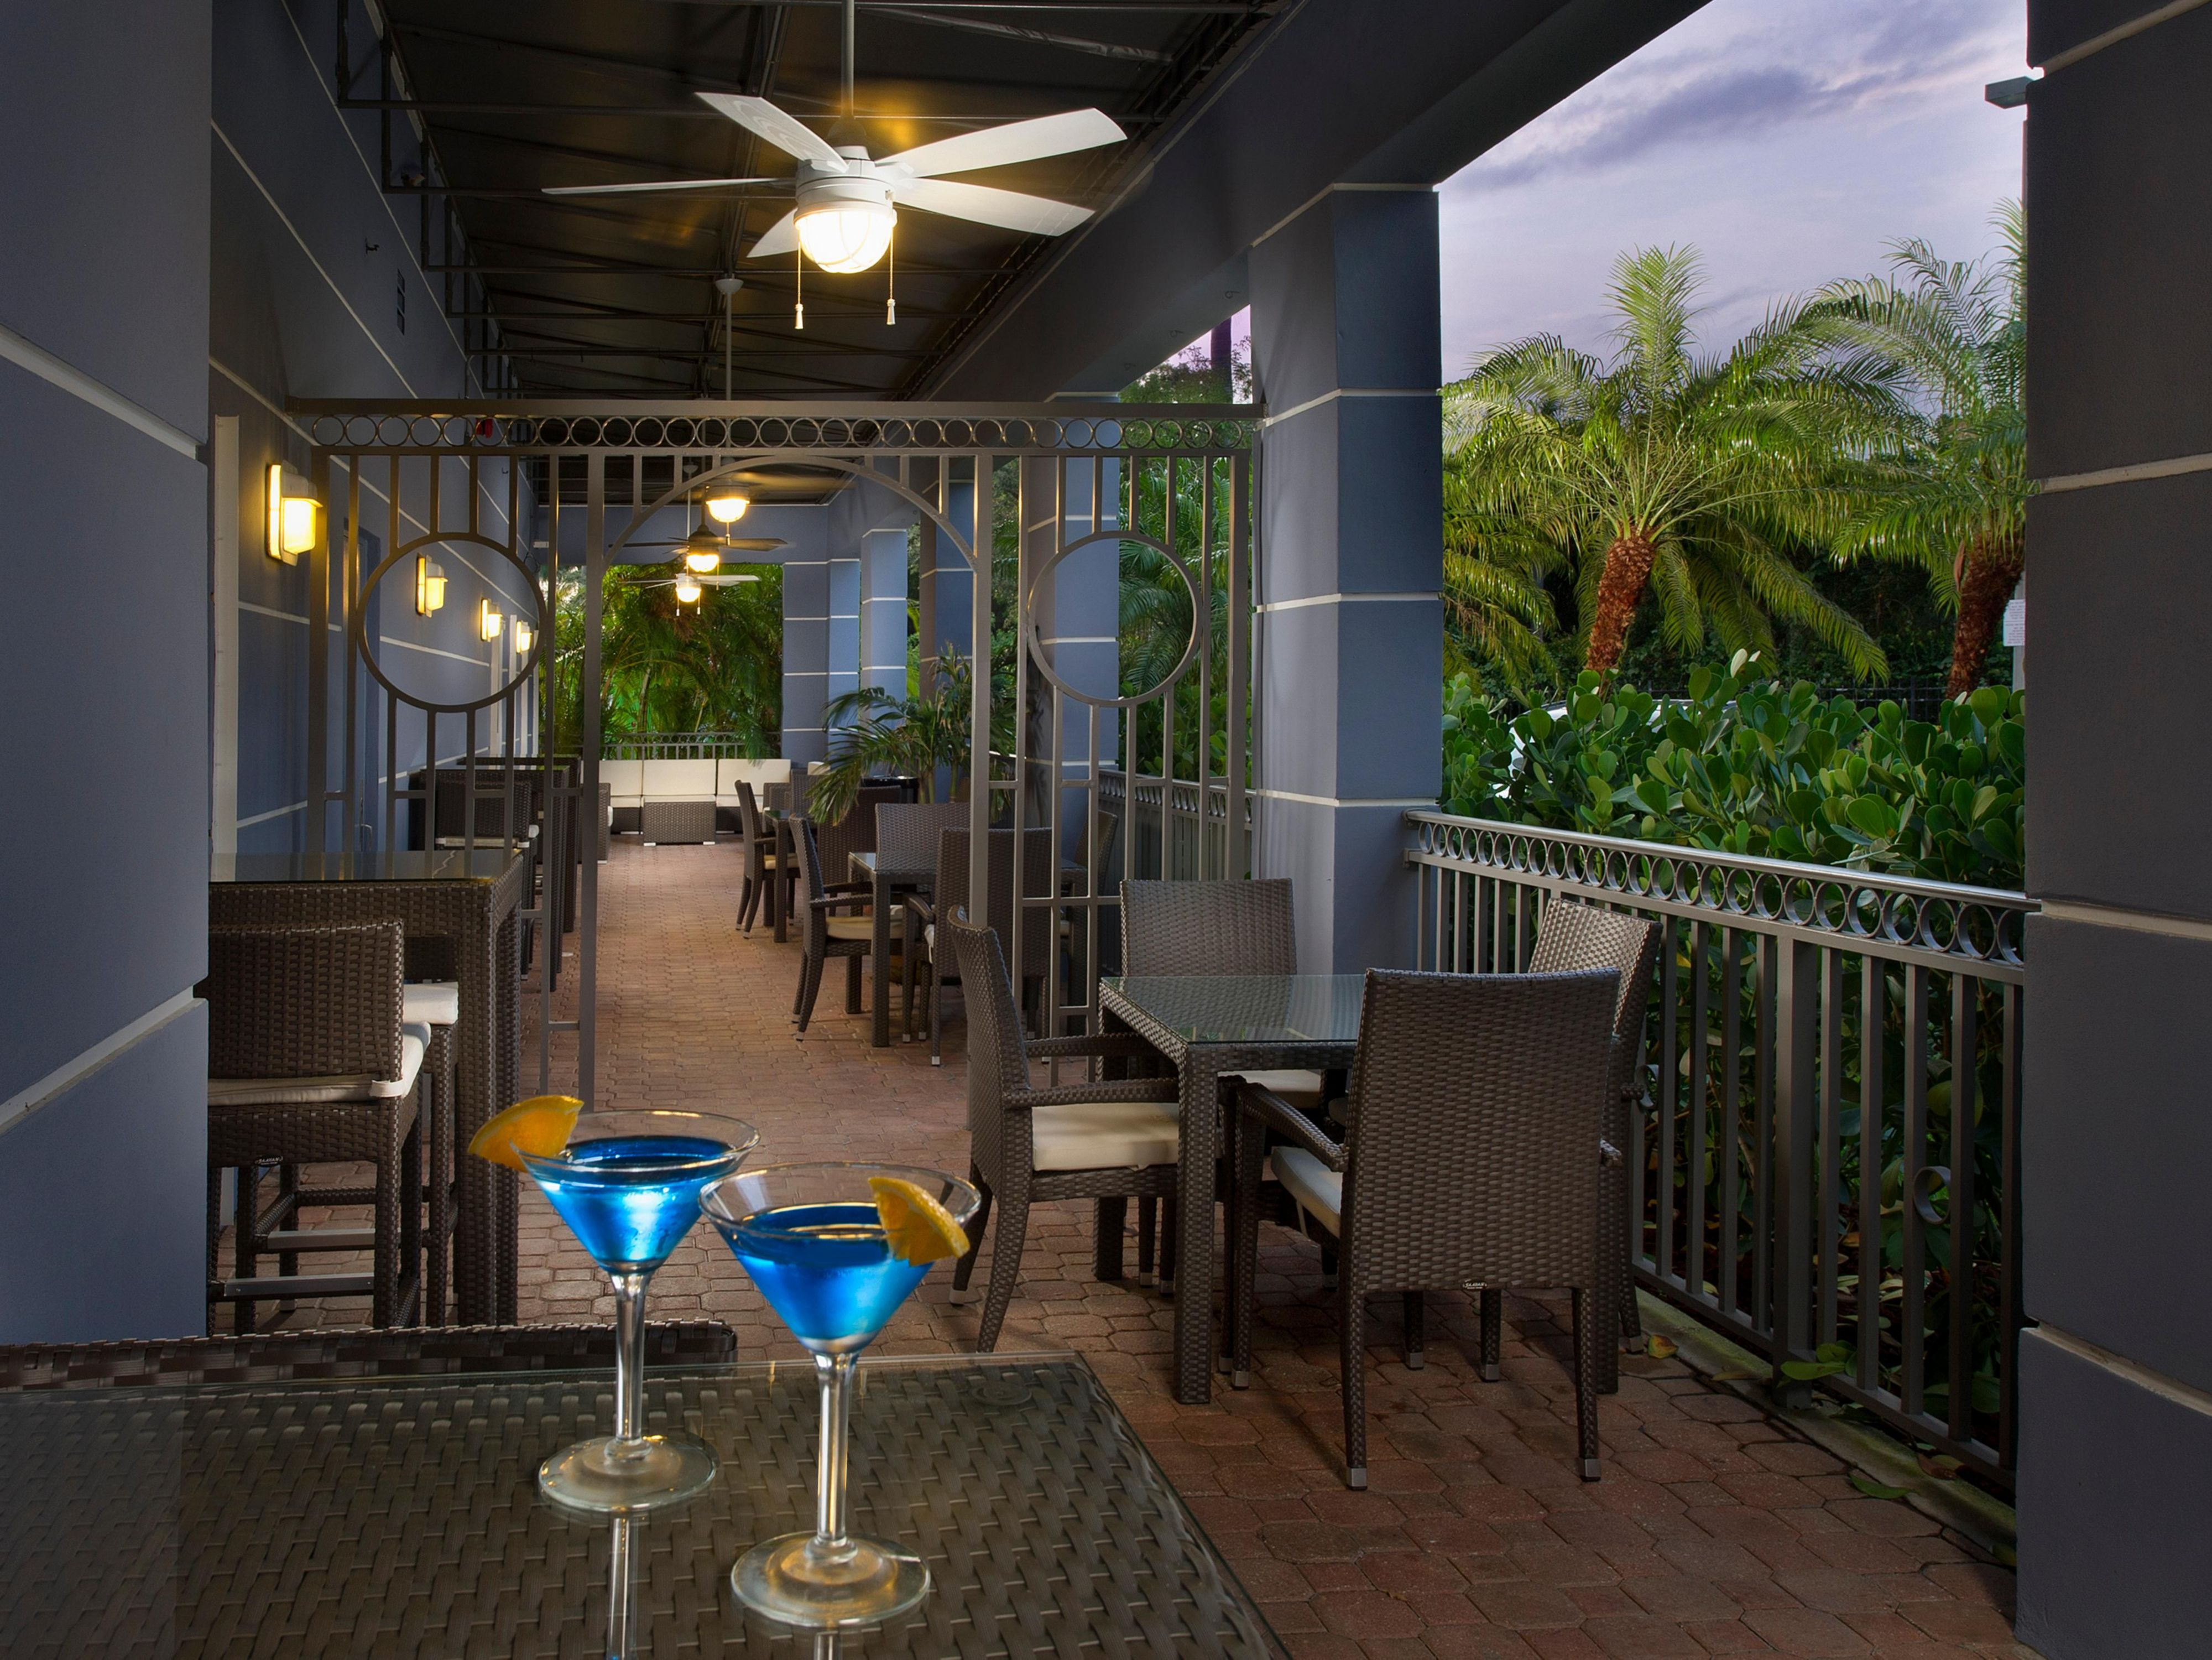 Seatback & enjoy a delicious drink by the patio